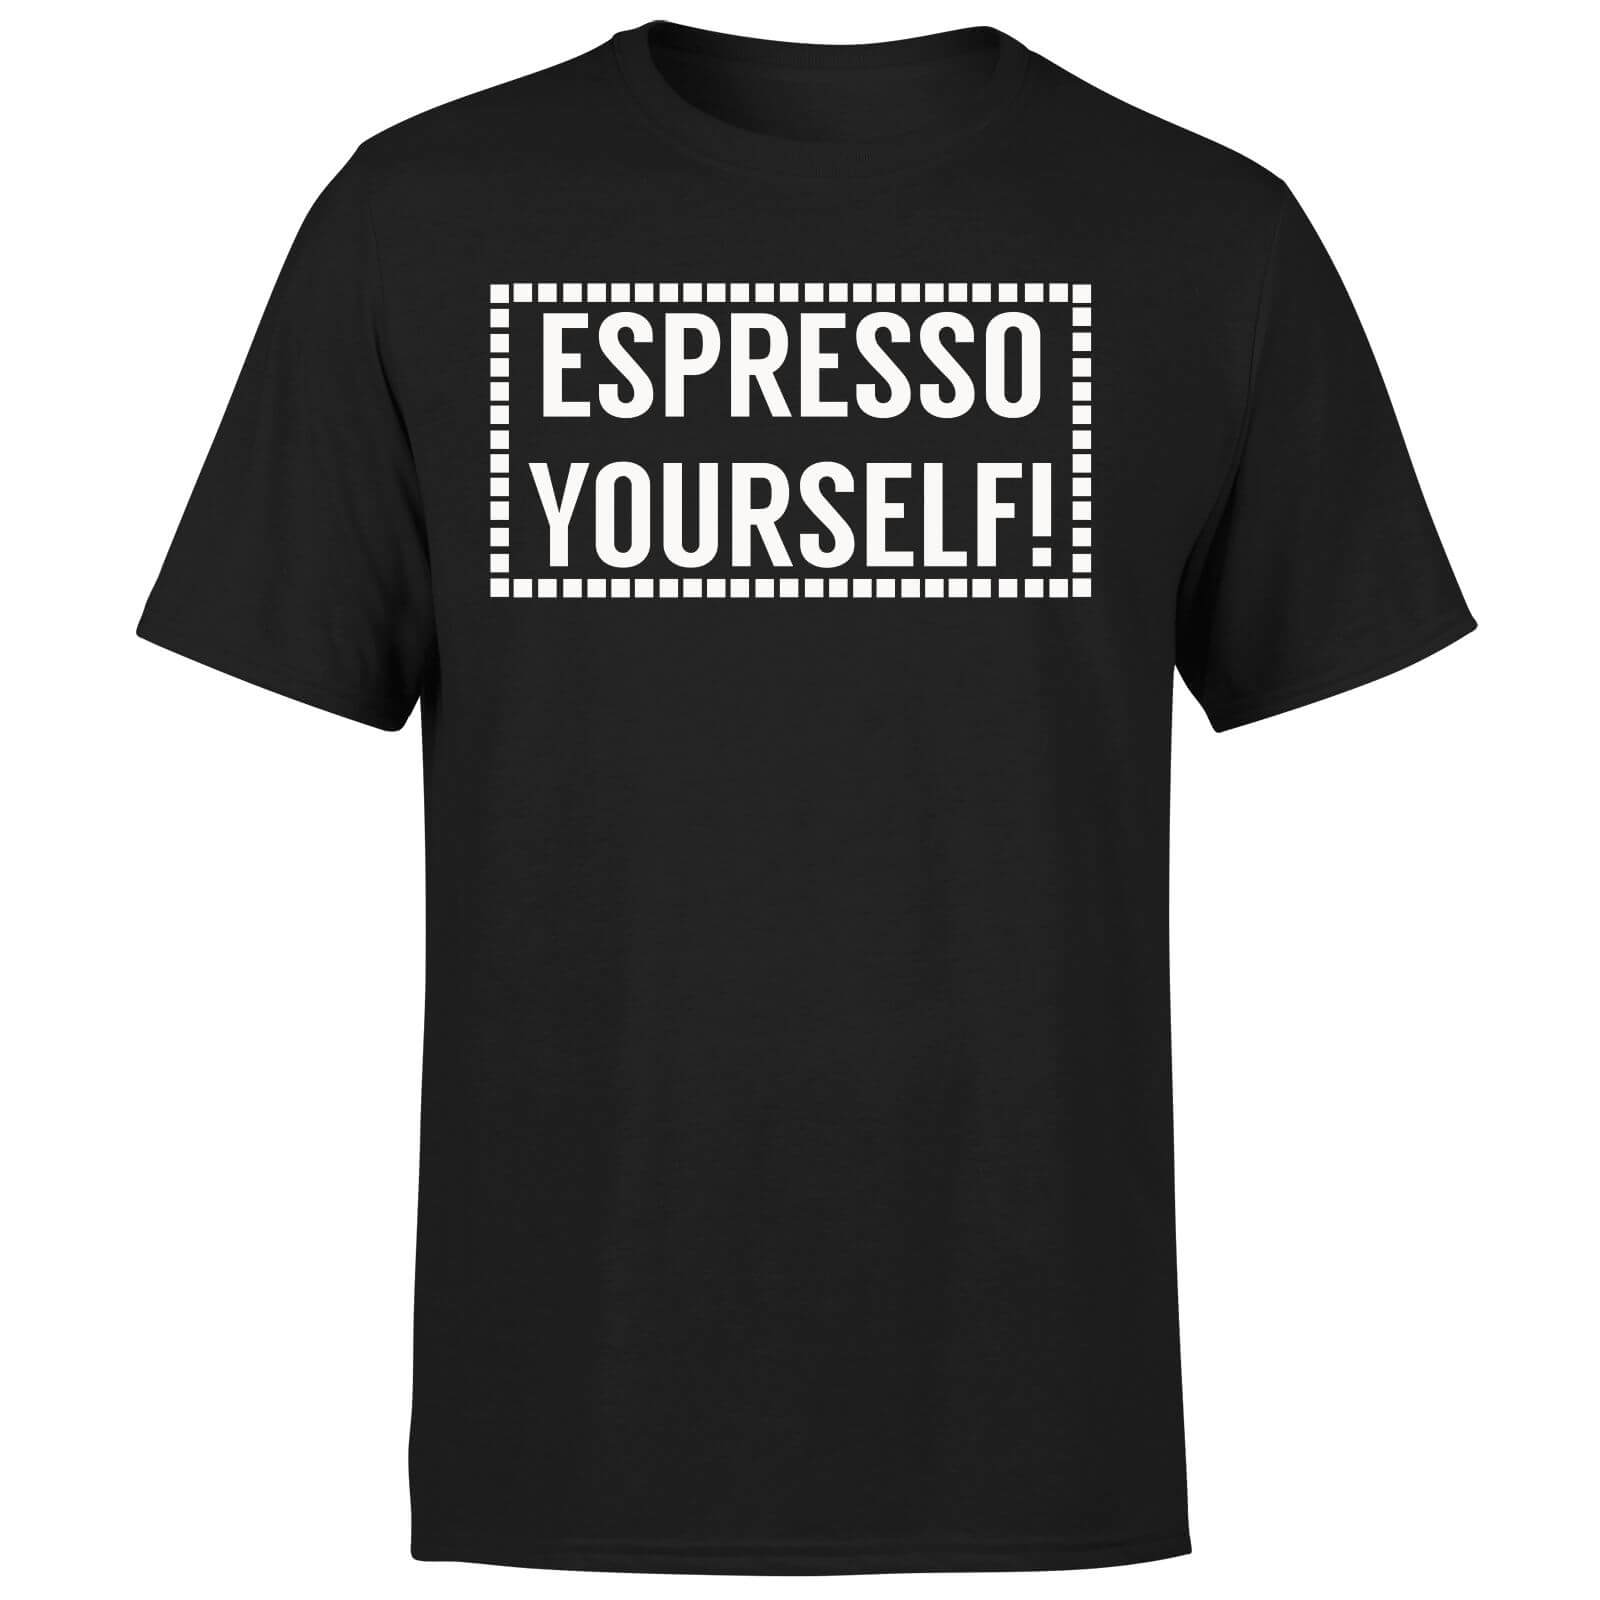 Expresso Yourself T-Shirt - Black